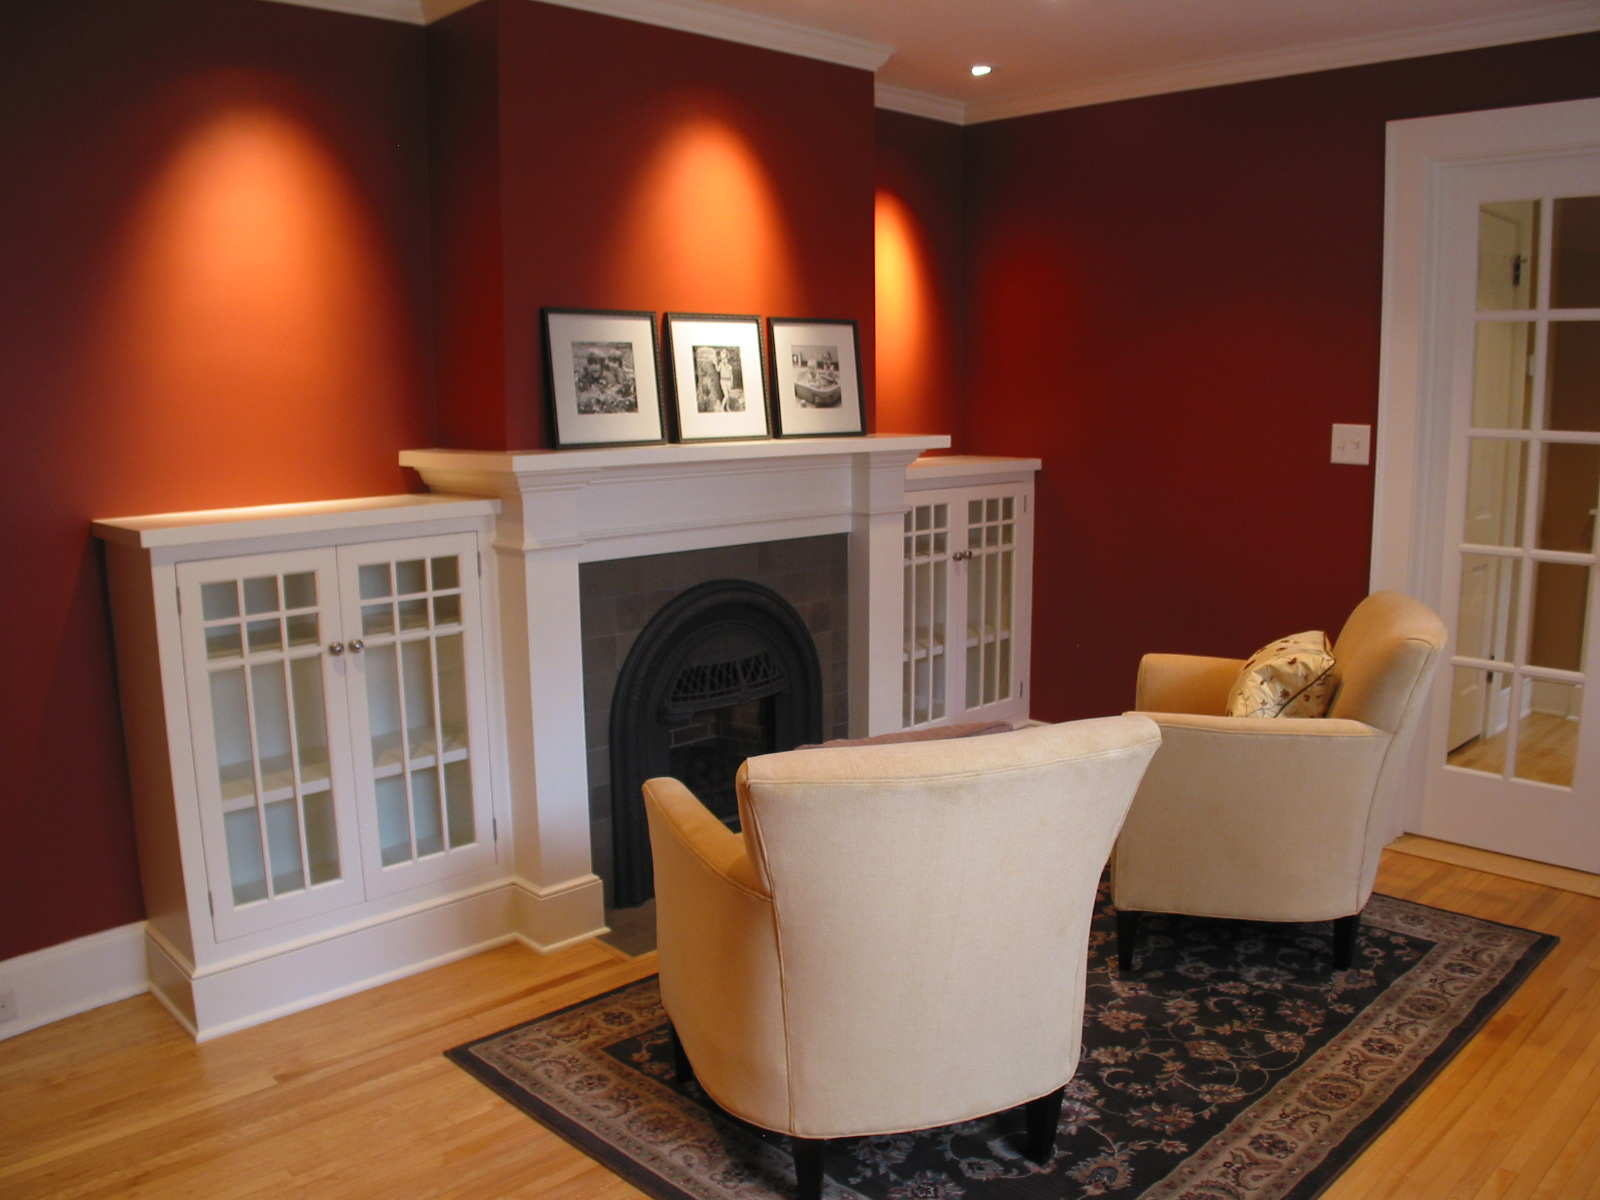 Living room remodel with fireplace and accent lighting